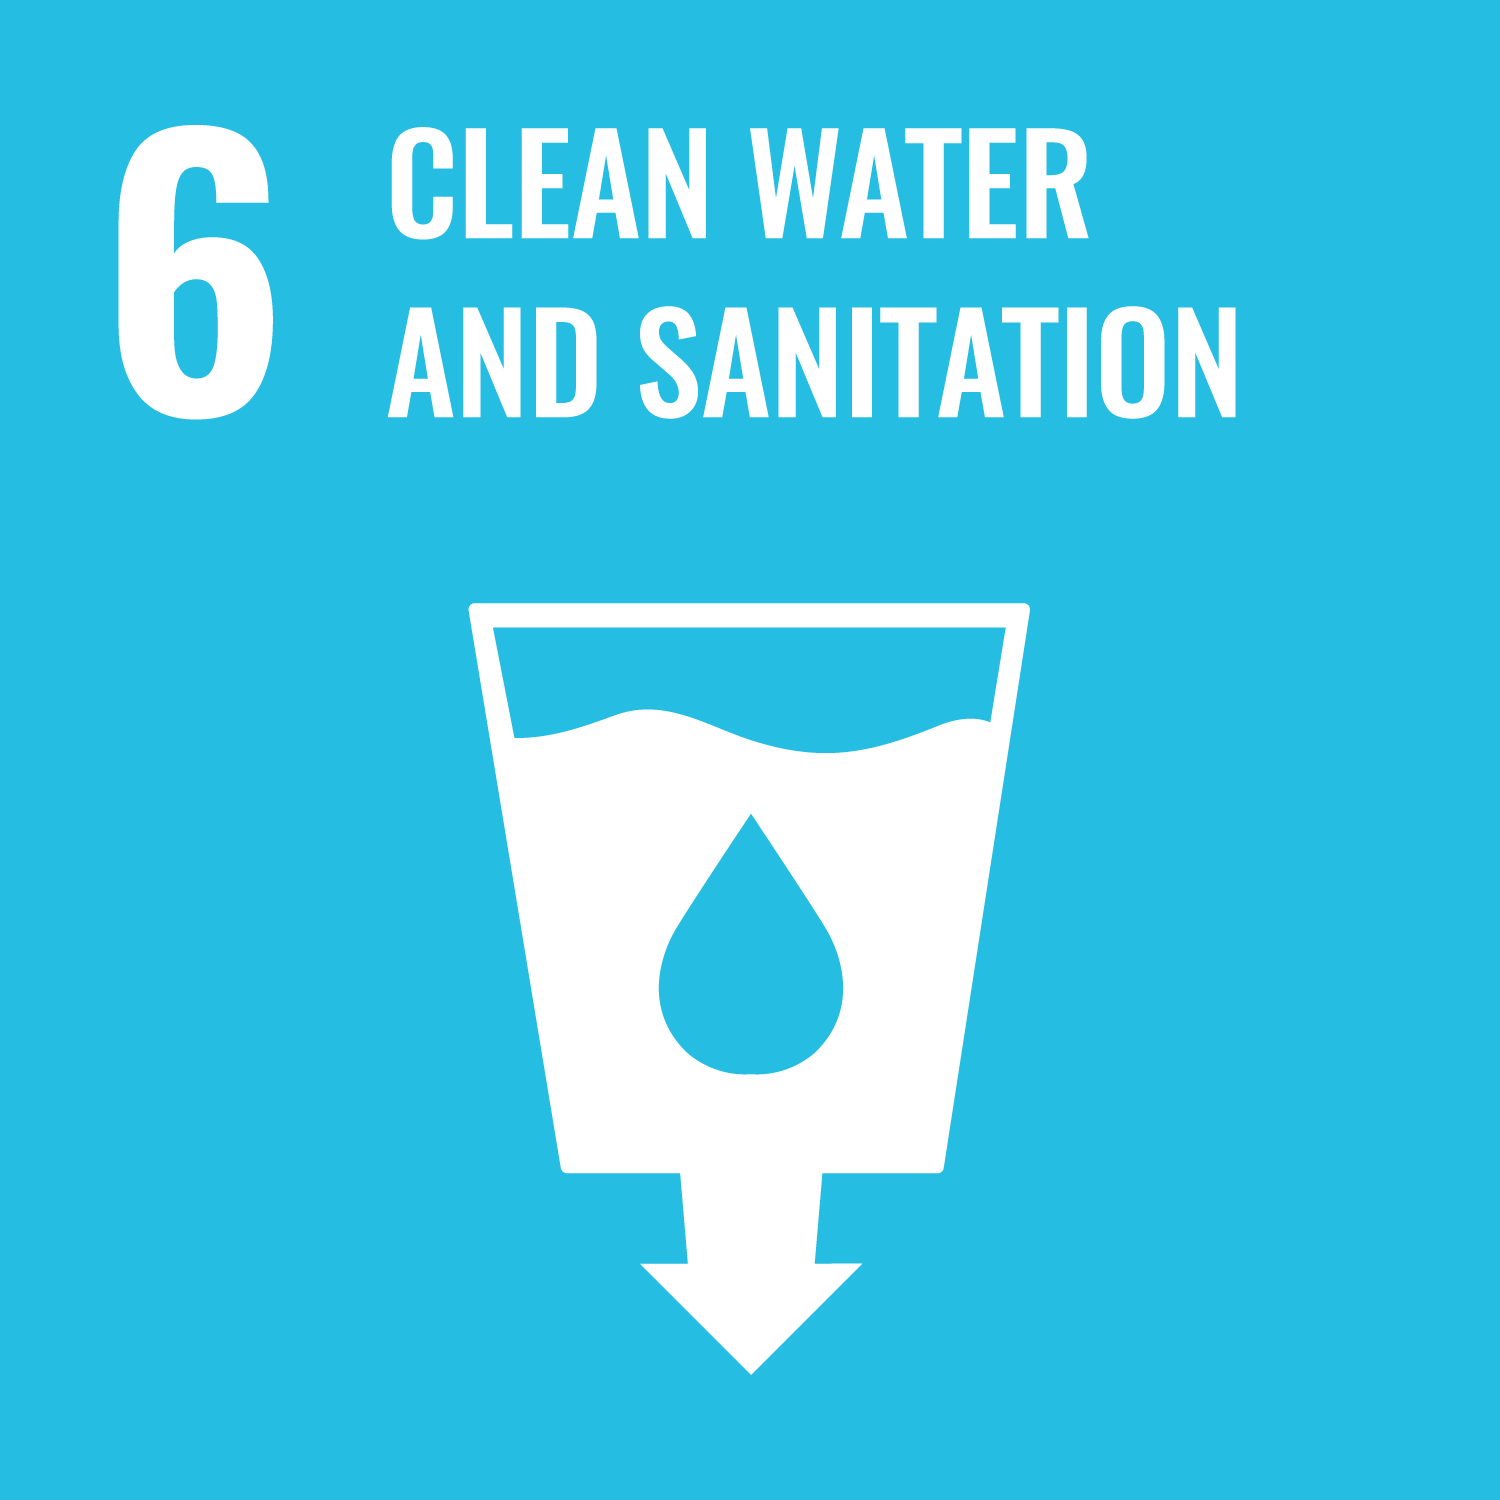 Sustainable Development Goal - Clean Water and Sanitation